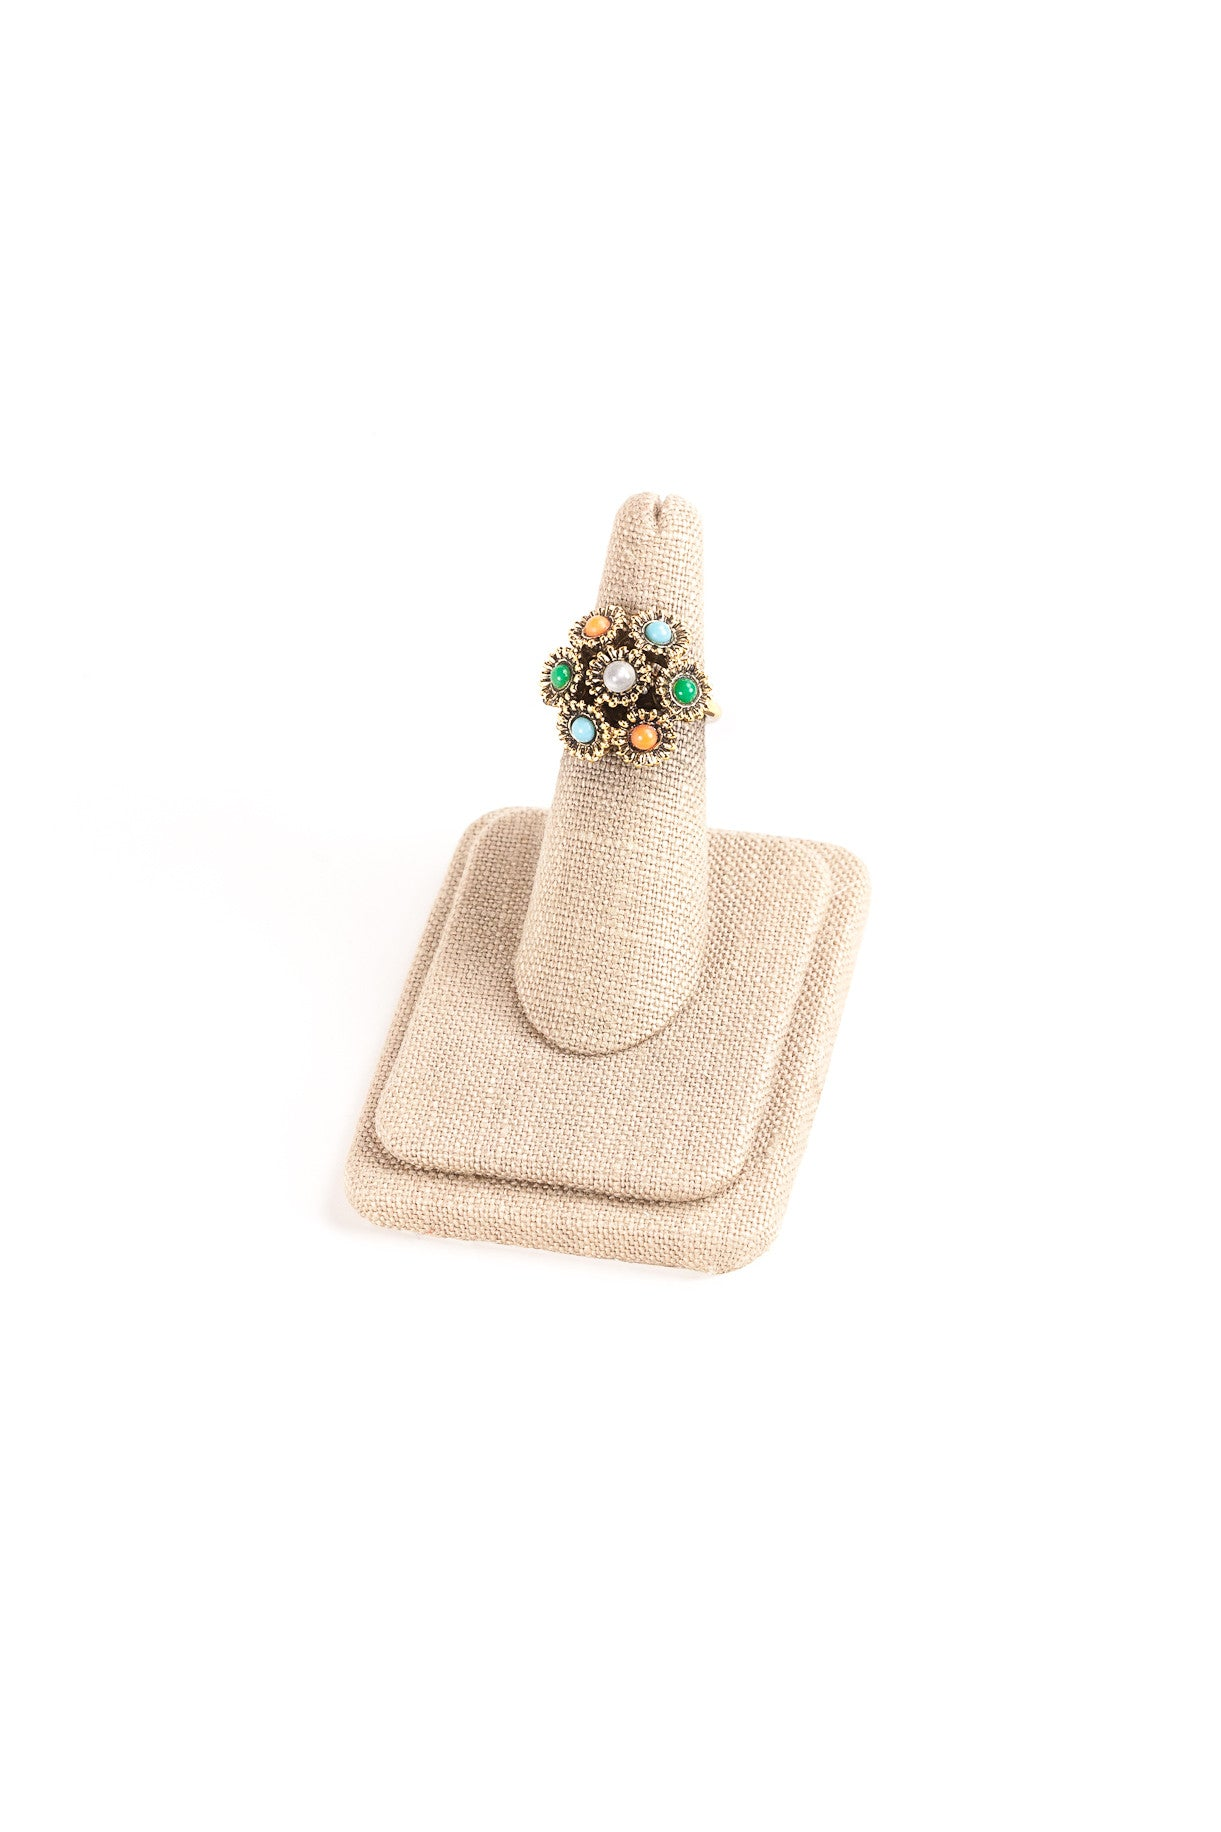 70's__Sarah Coventry__Mixed Stones Ring